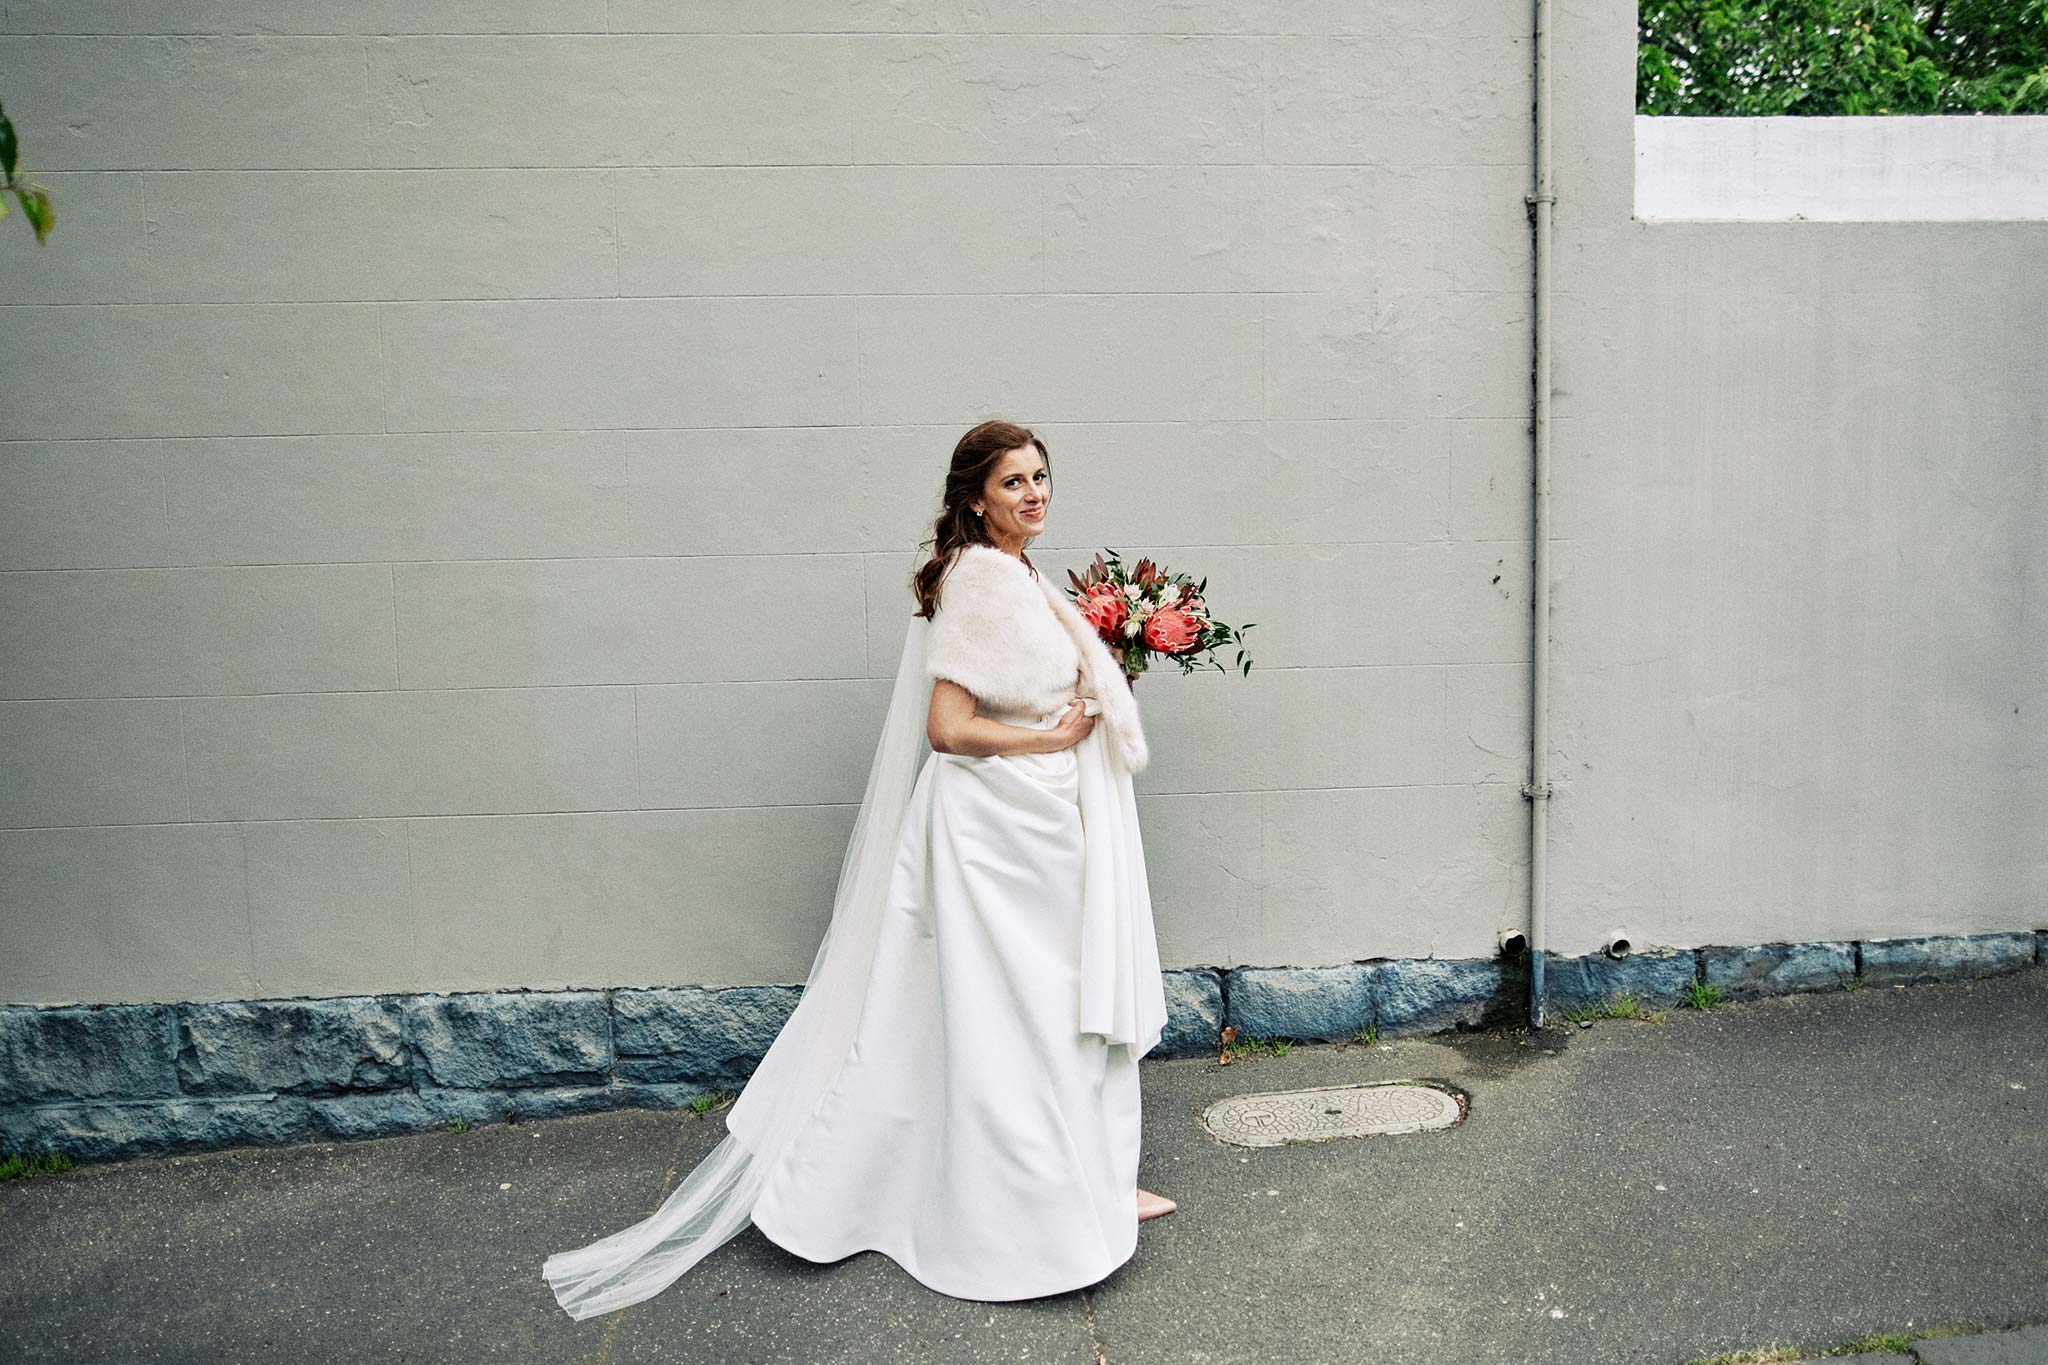 East Melbourne Wedding Photographer Bride walking in dress